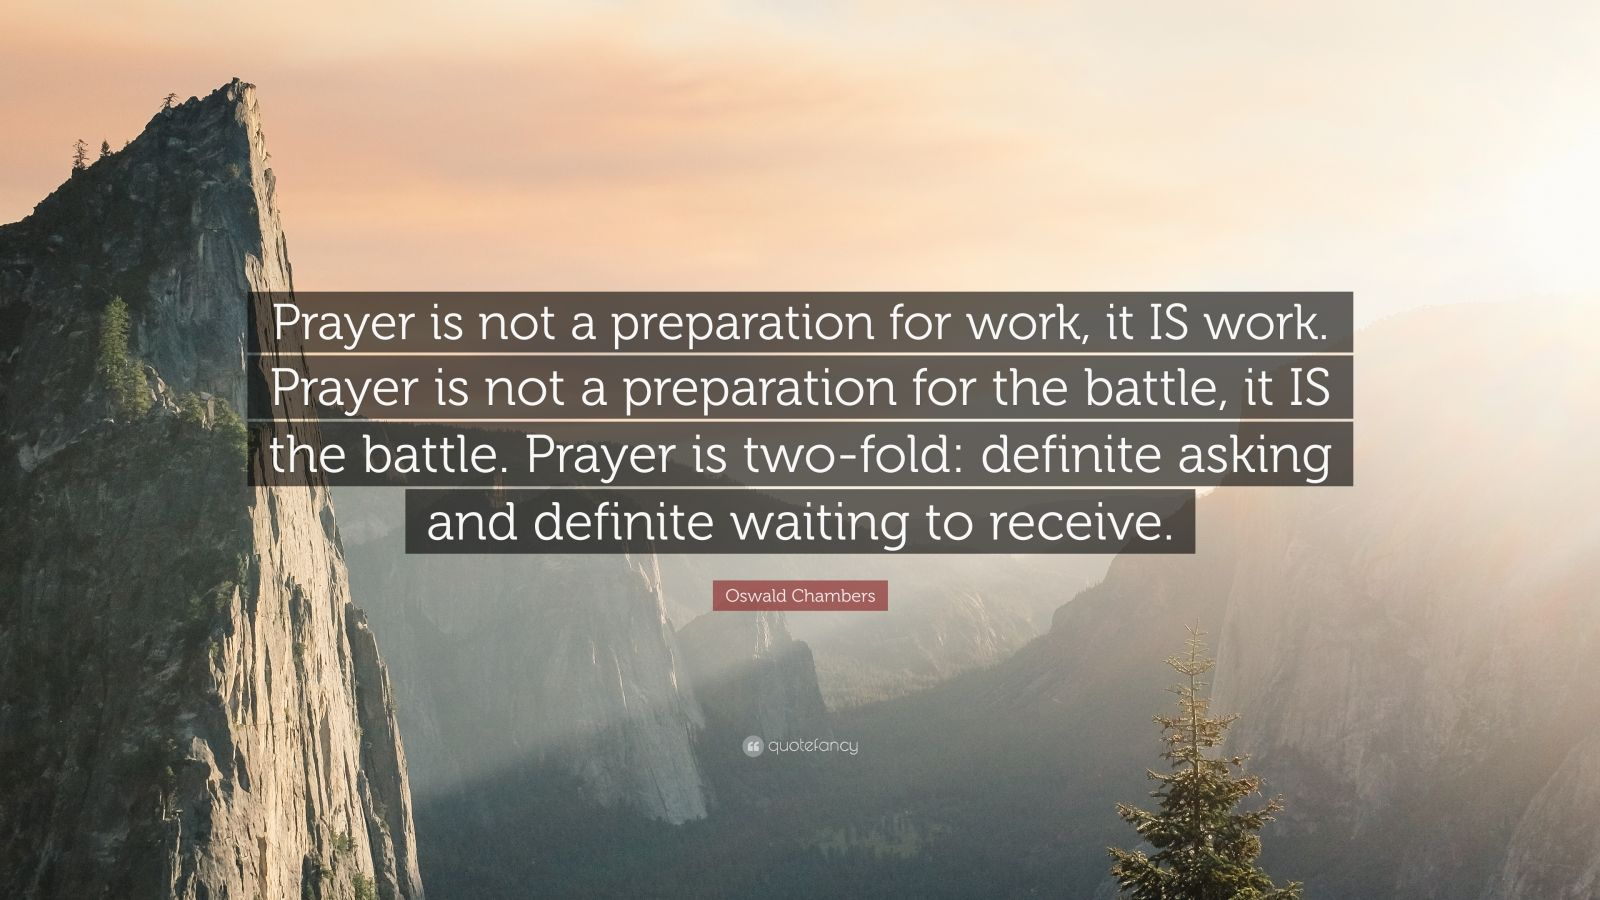 """Oswald Chambers Quote: """"Prayer is not a preparation for work, it IS work. Prayer is not a preparation for the battle, it IS the battle. Prayer is two-fold: definite asking and definite waiting to receive."""""""